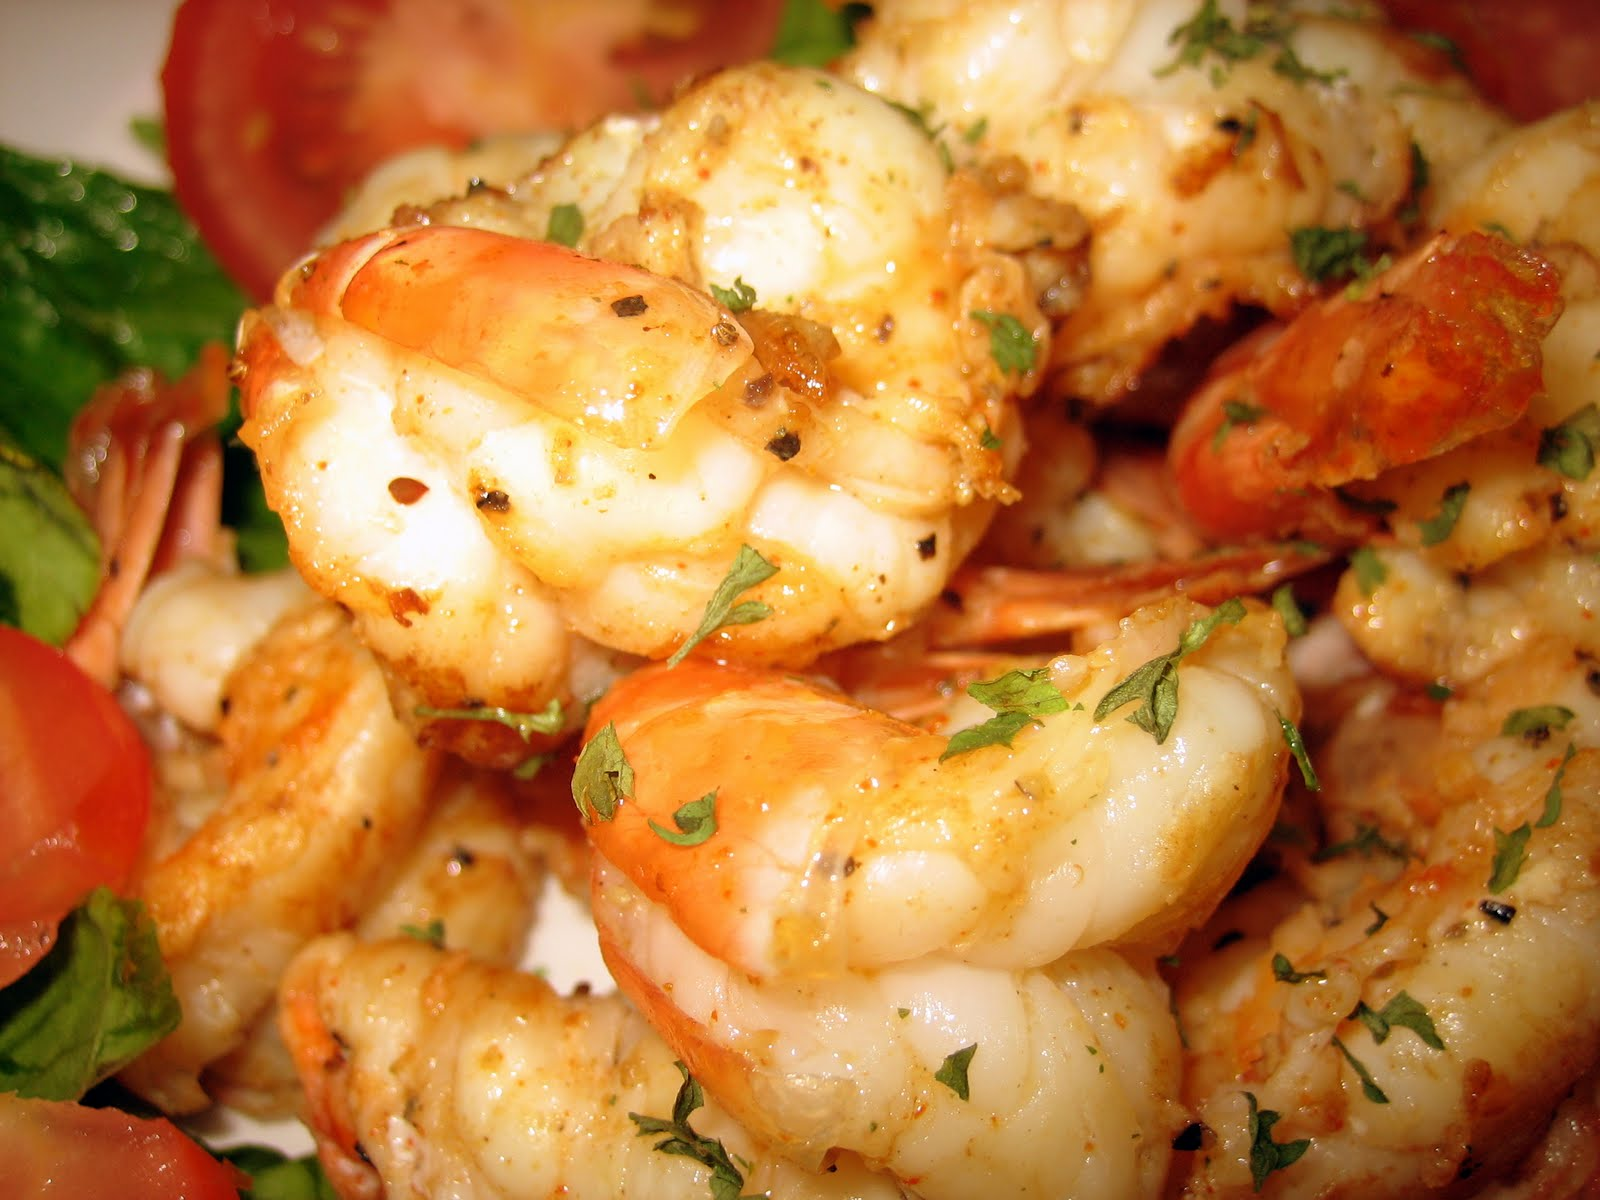 ... - Great Recipes Inspired by Great Movies: Light and Spicy Shrimp